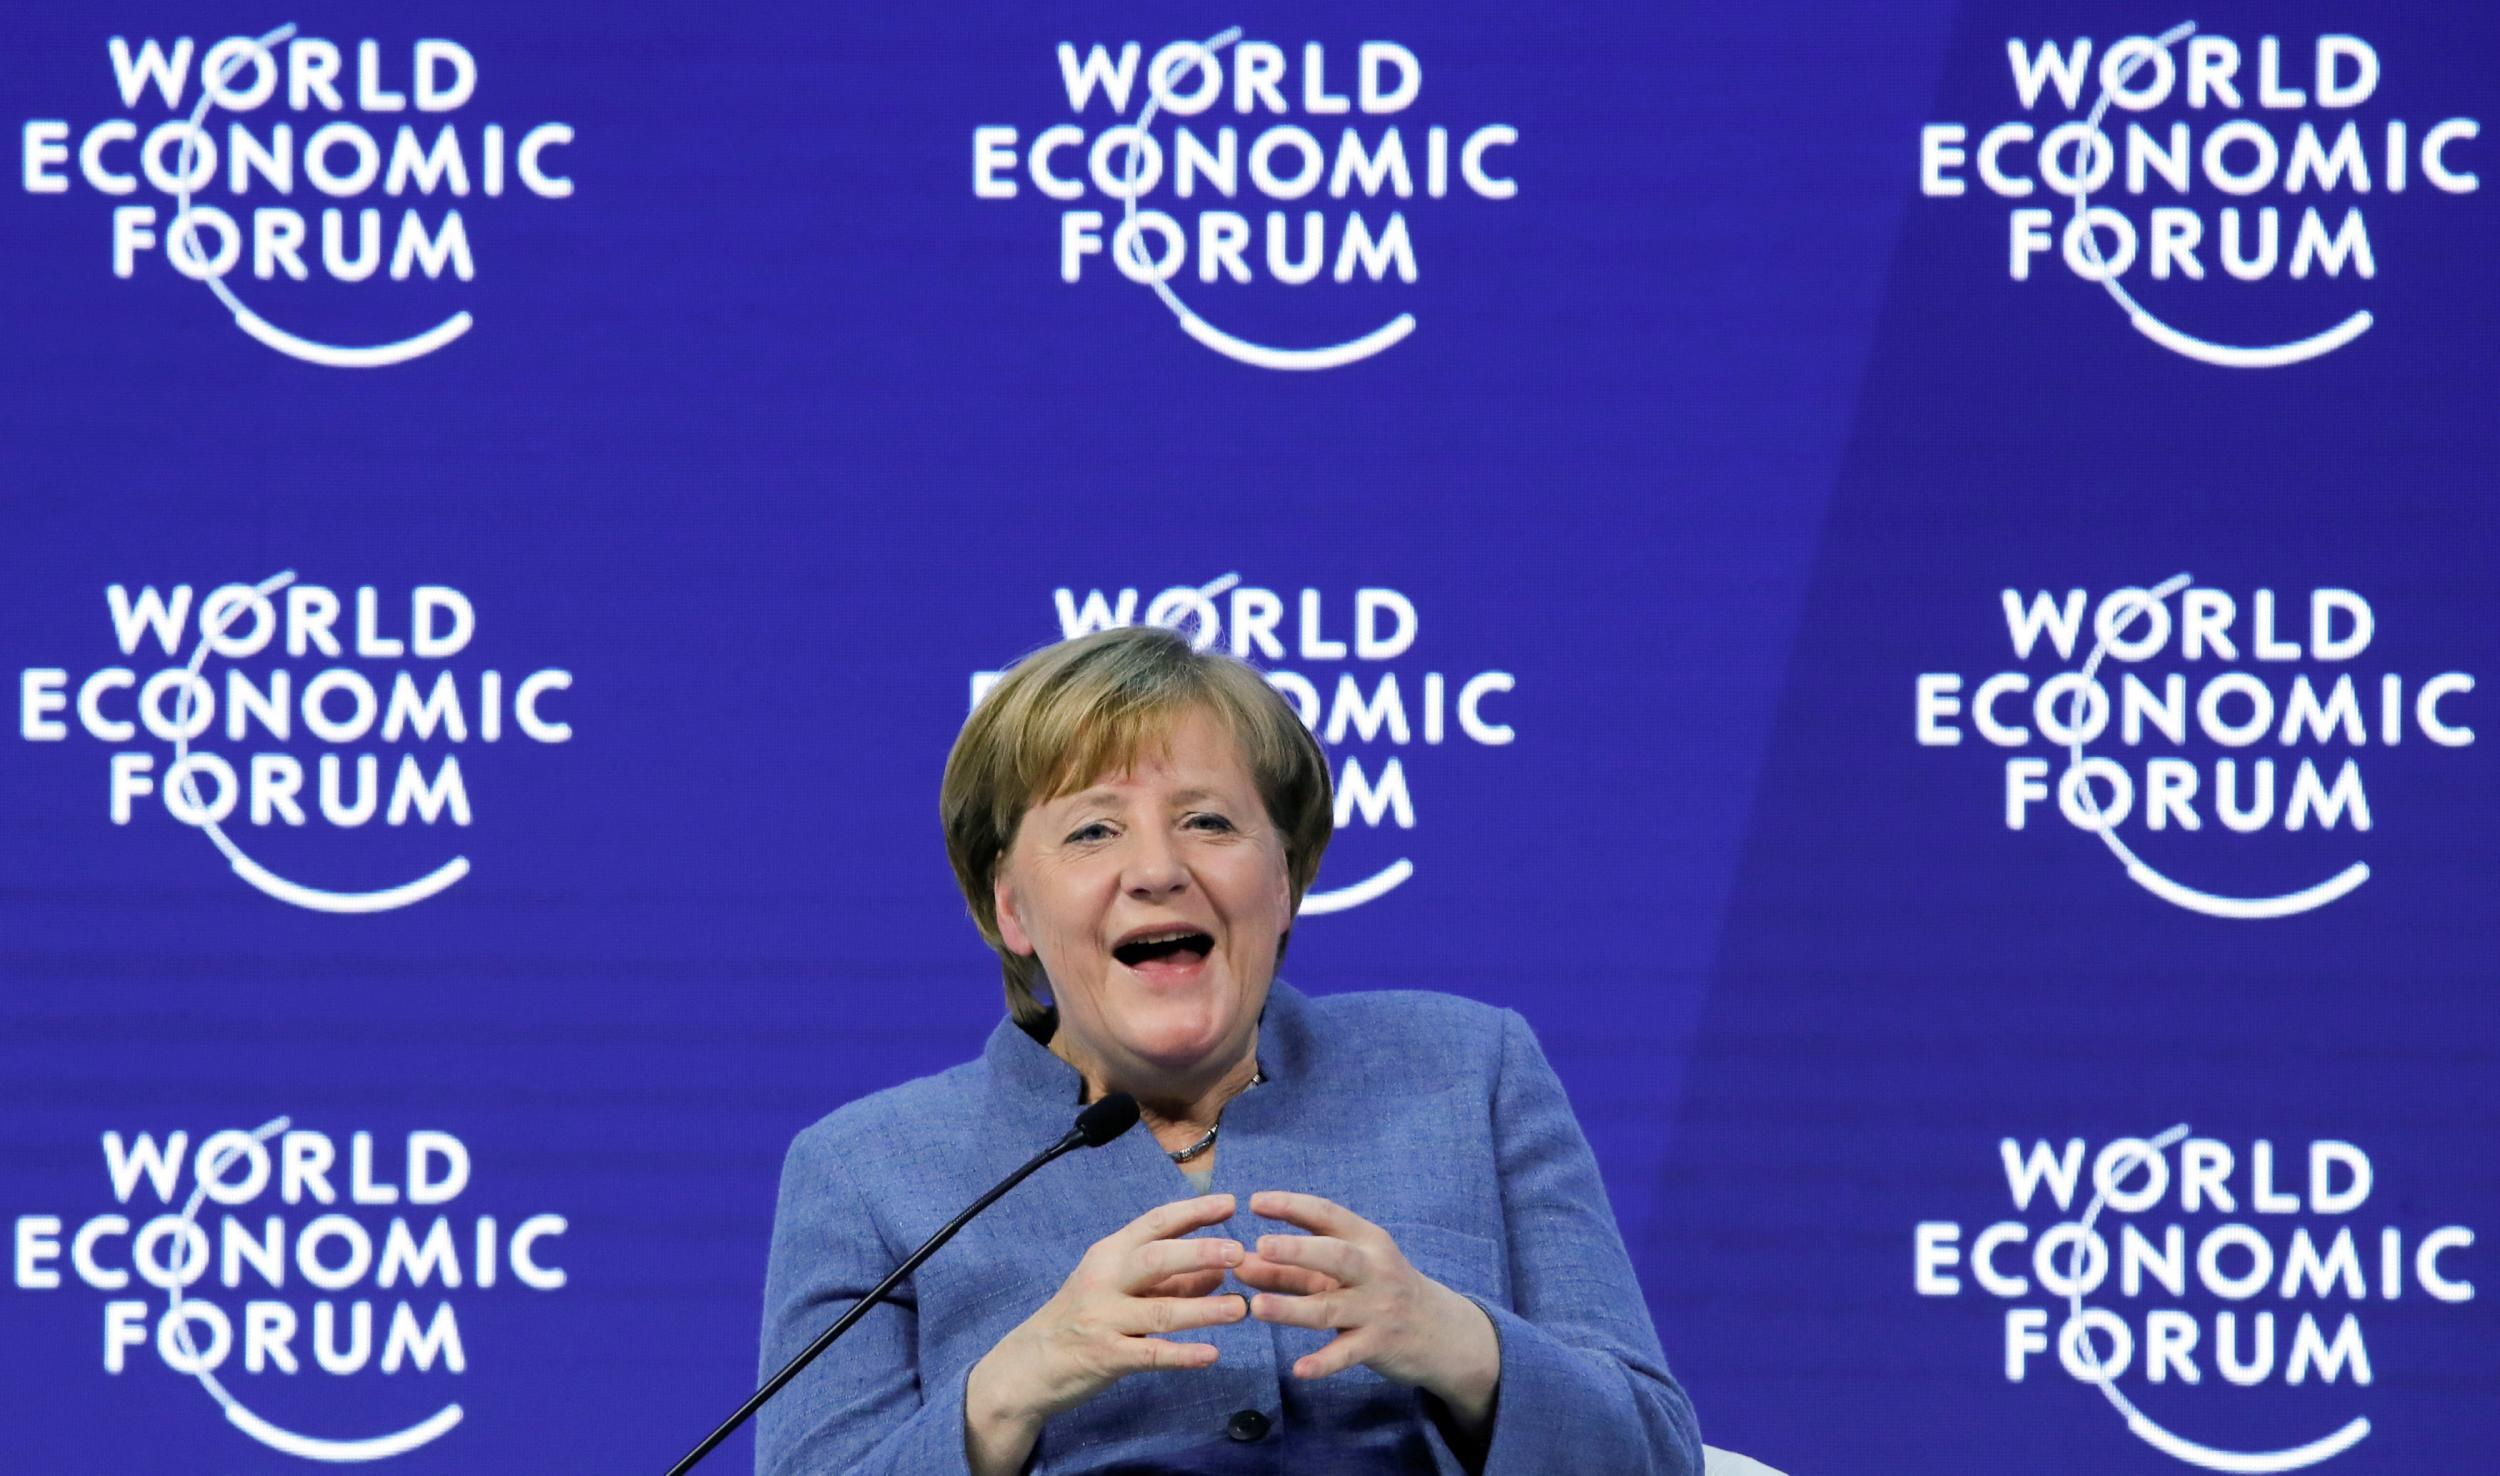 Angela Merkel at Davos: What did she say? And even though she didn't mention him, was it all about Trump?